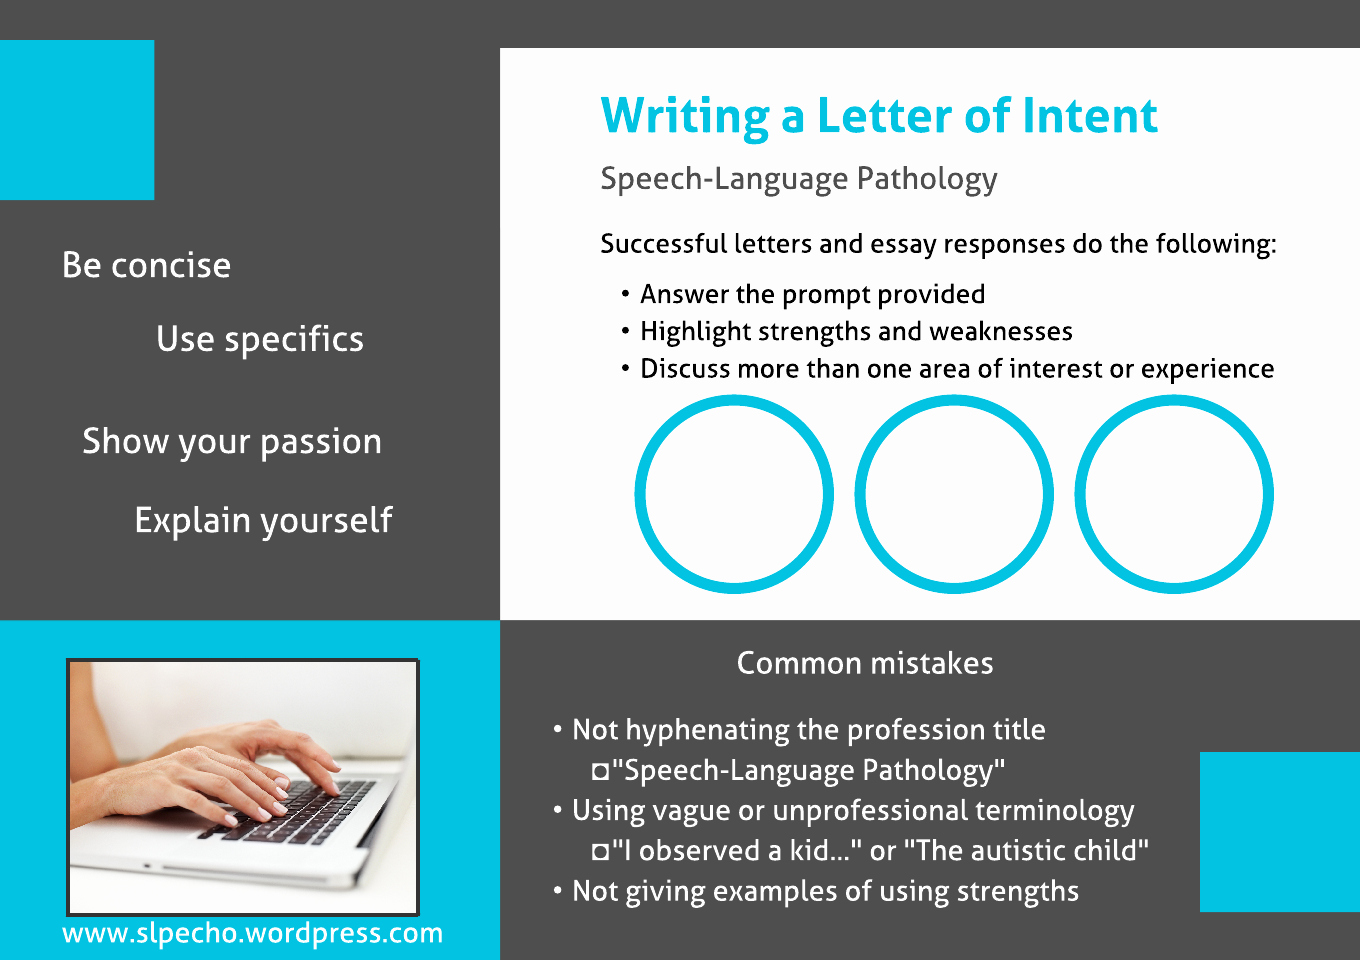 Graduate Letter Of Intent Sample Inspirational Speech Language Pathology – Slp Echo